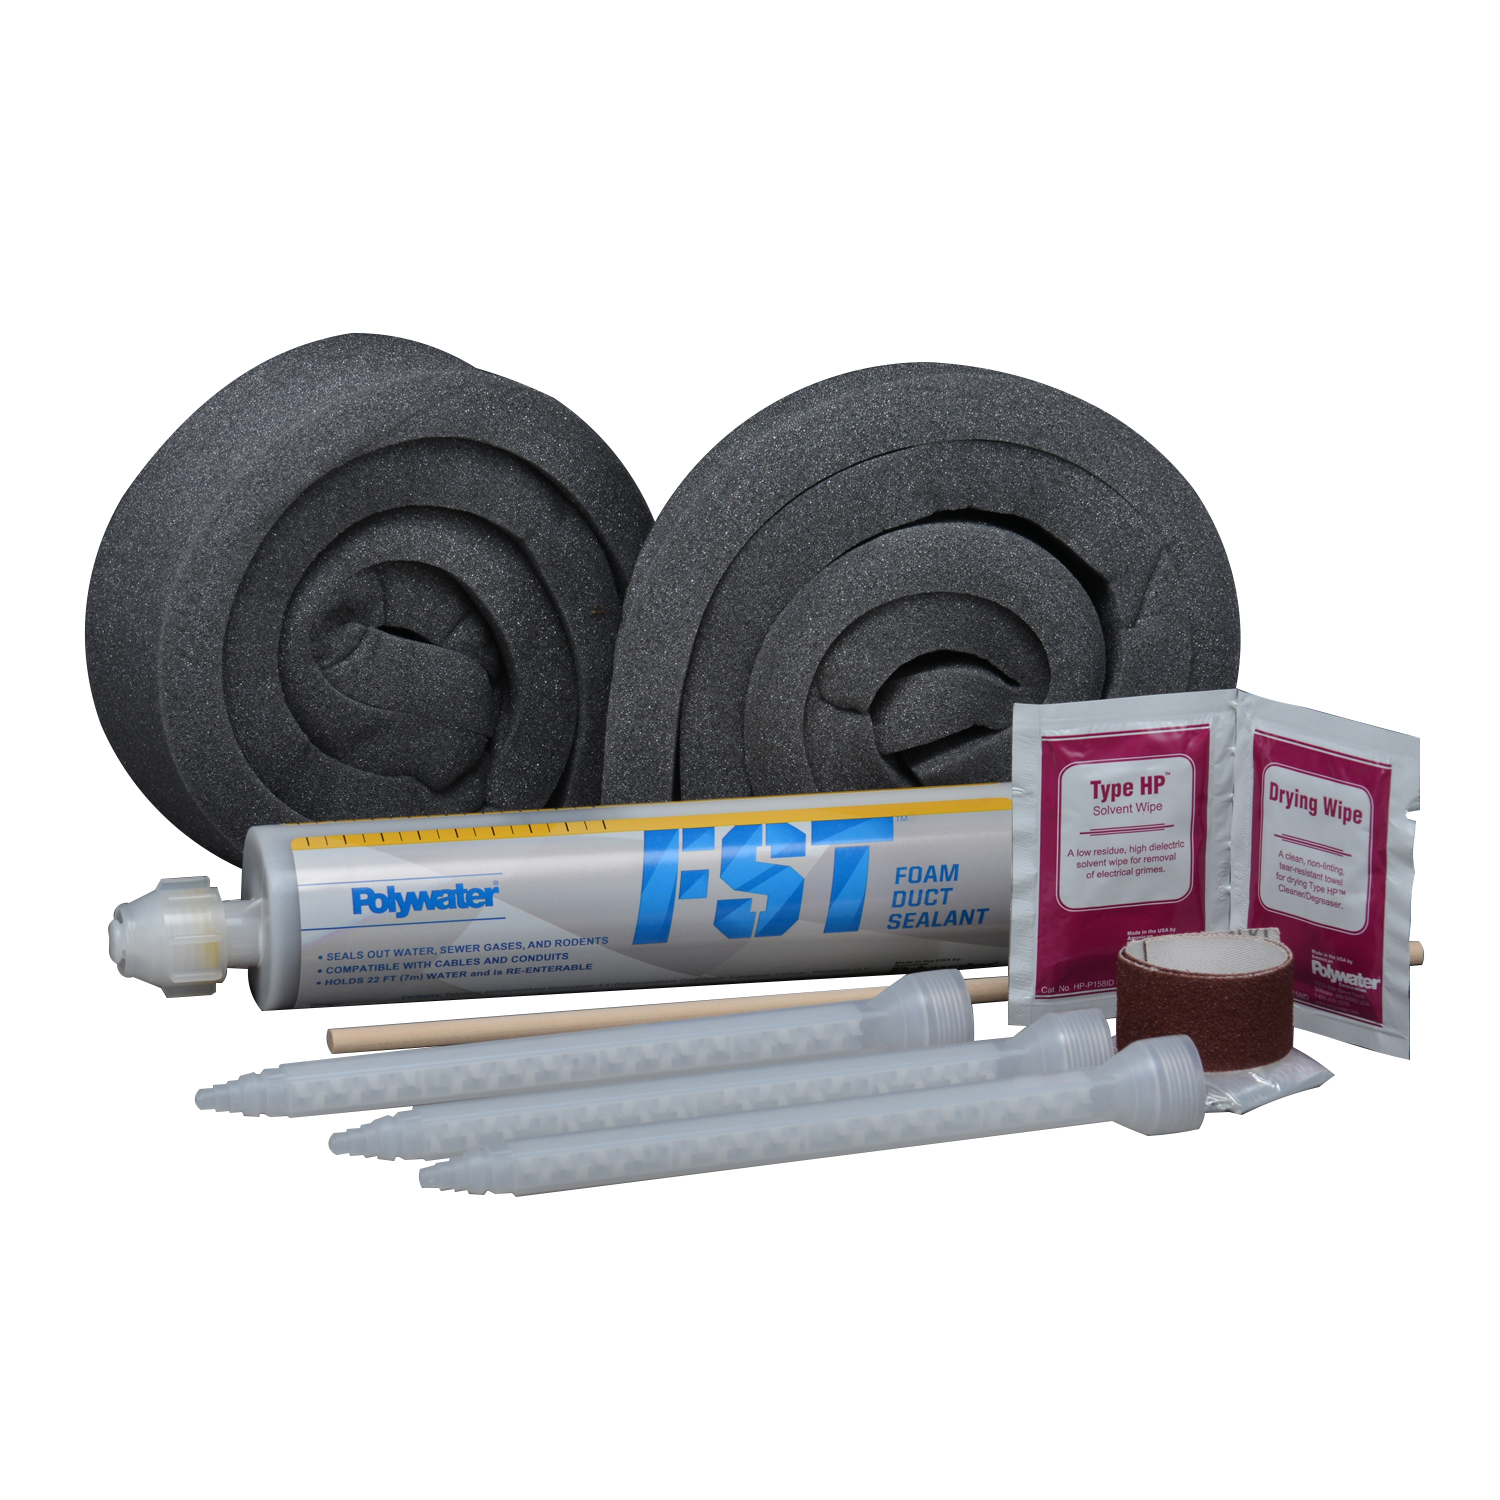 POLYWATER Same as kit above in a box of 6. Protects Conduit and Raceway Systems